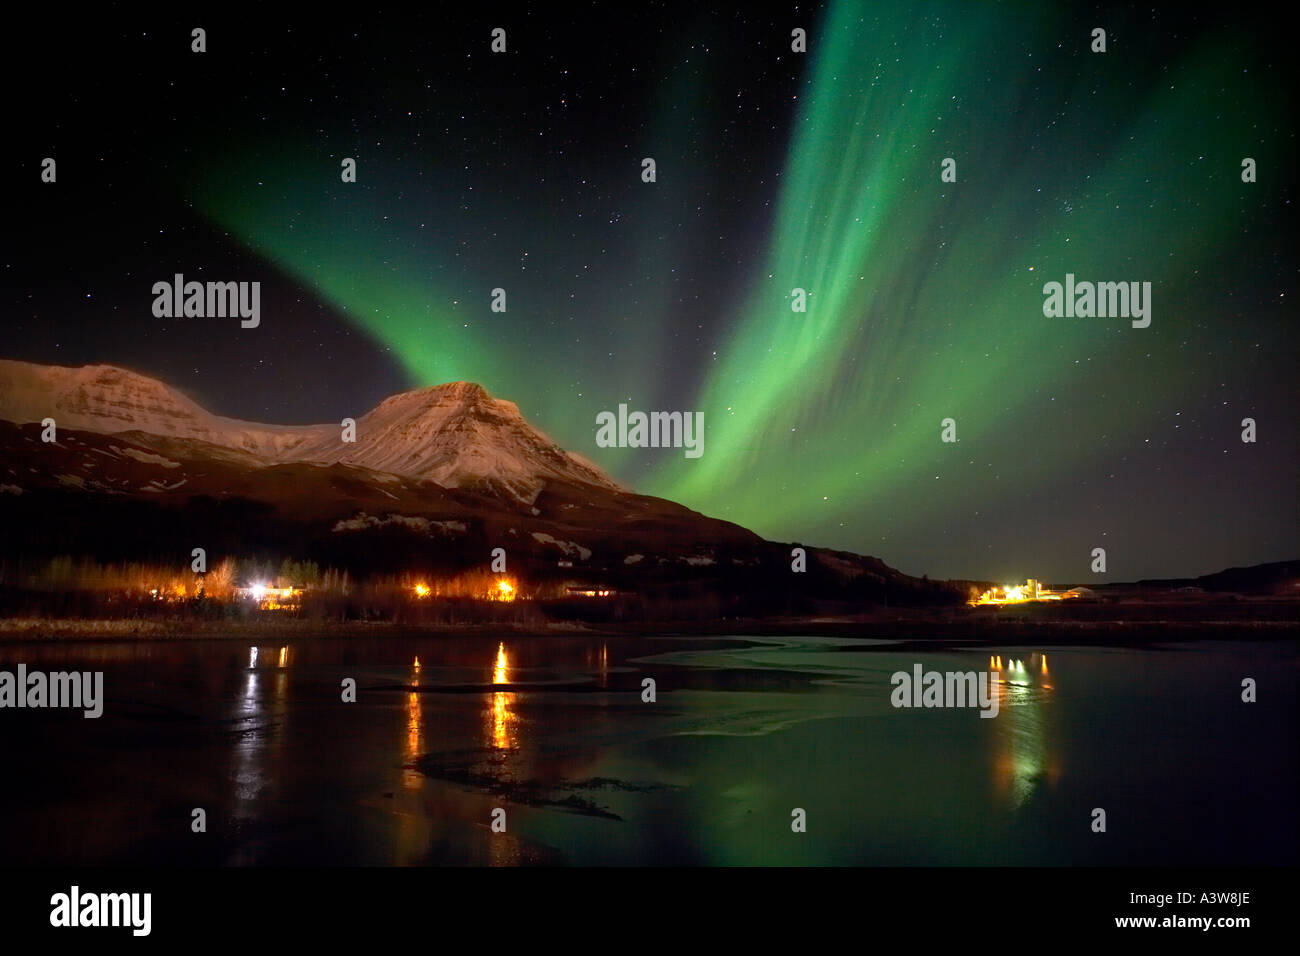 Aurora Borealis, Northern Lights, Iceland - Stock Image